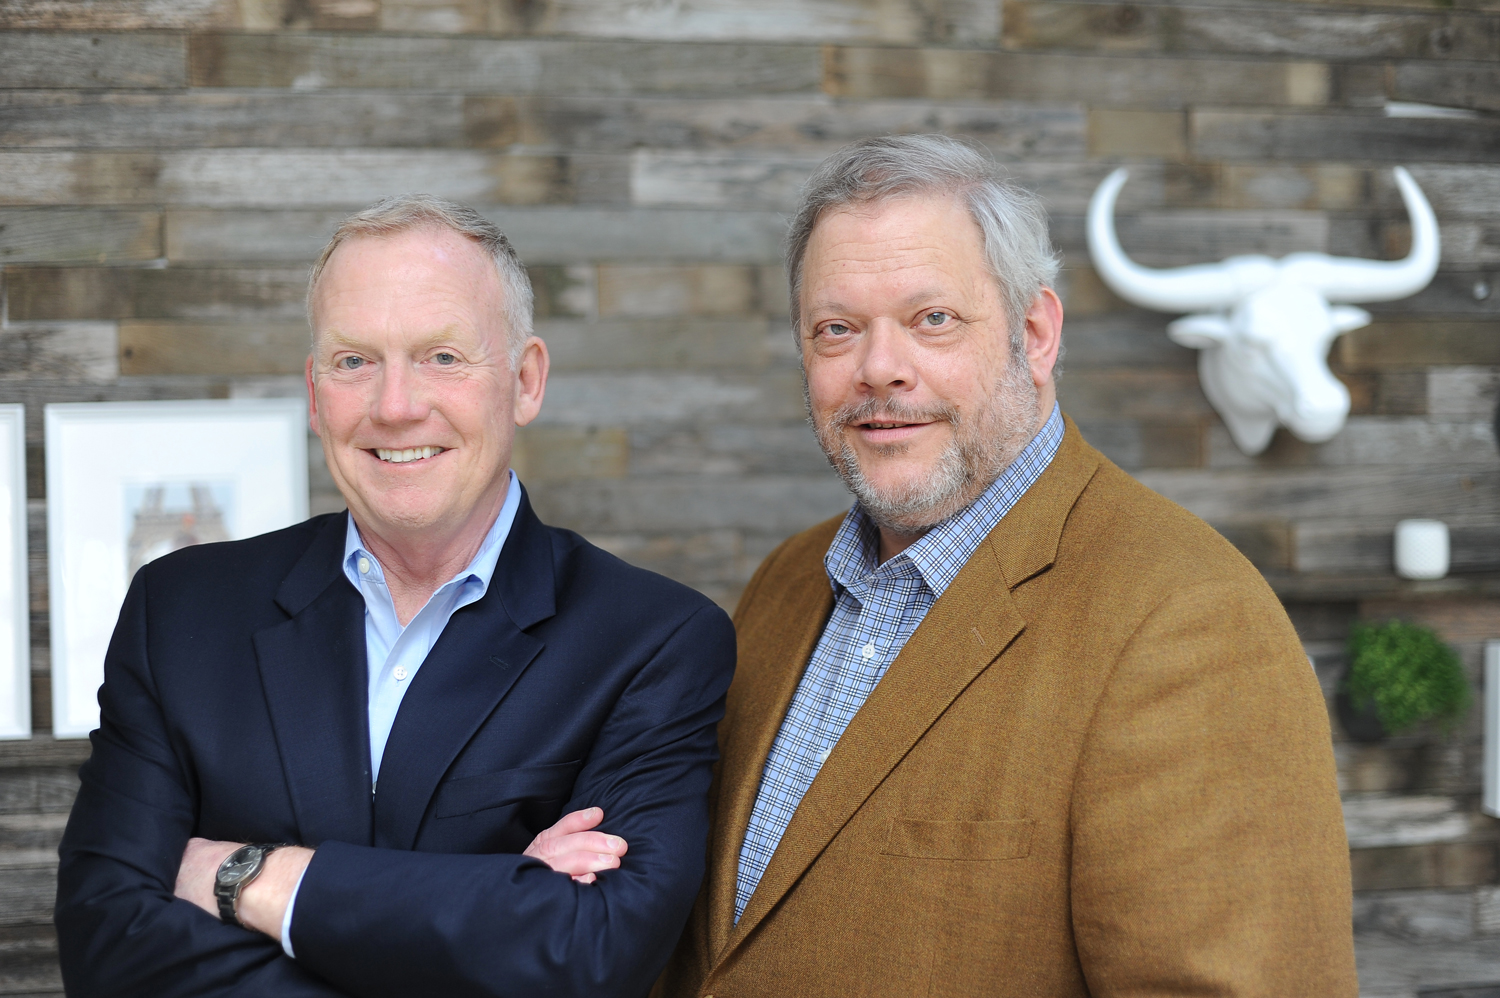 Michael Holland and Bill McGarry, co-founders of Performance Harmony, have over 50 years of combined experience in business leadership, including: developing high-performance organizations, driving and managing business improvements, change management, culture change, mergers and acquisitions, and leadership development.